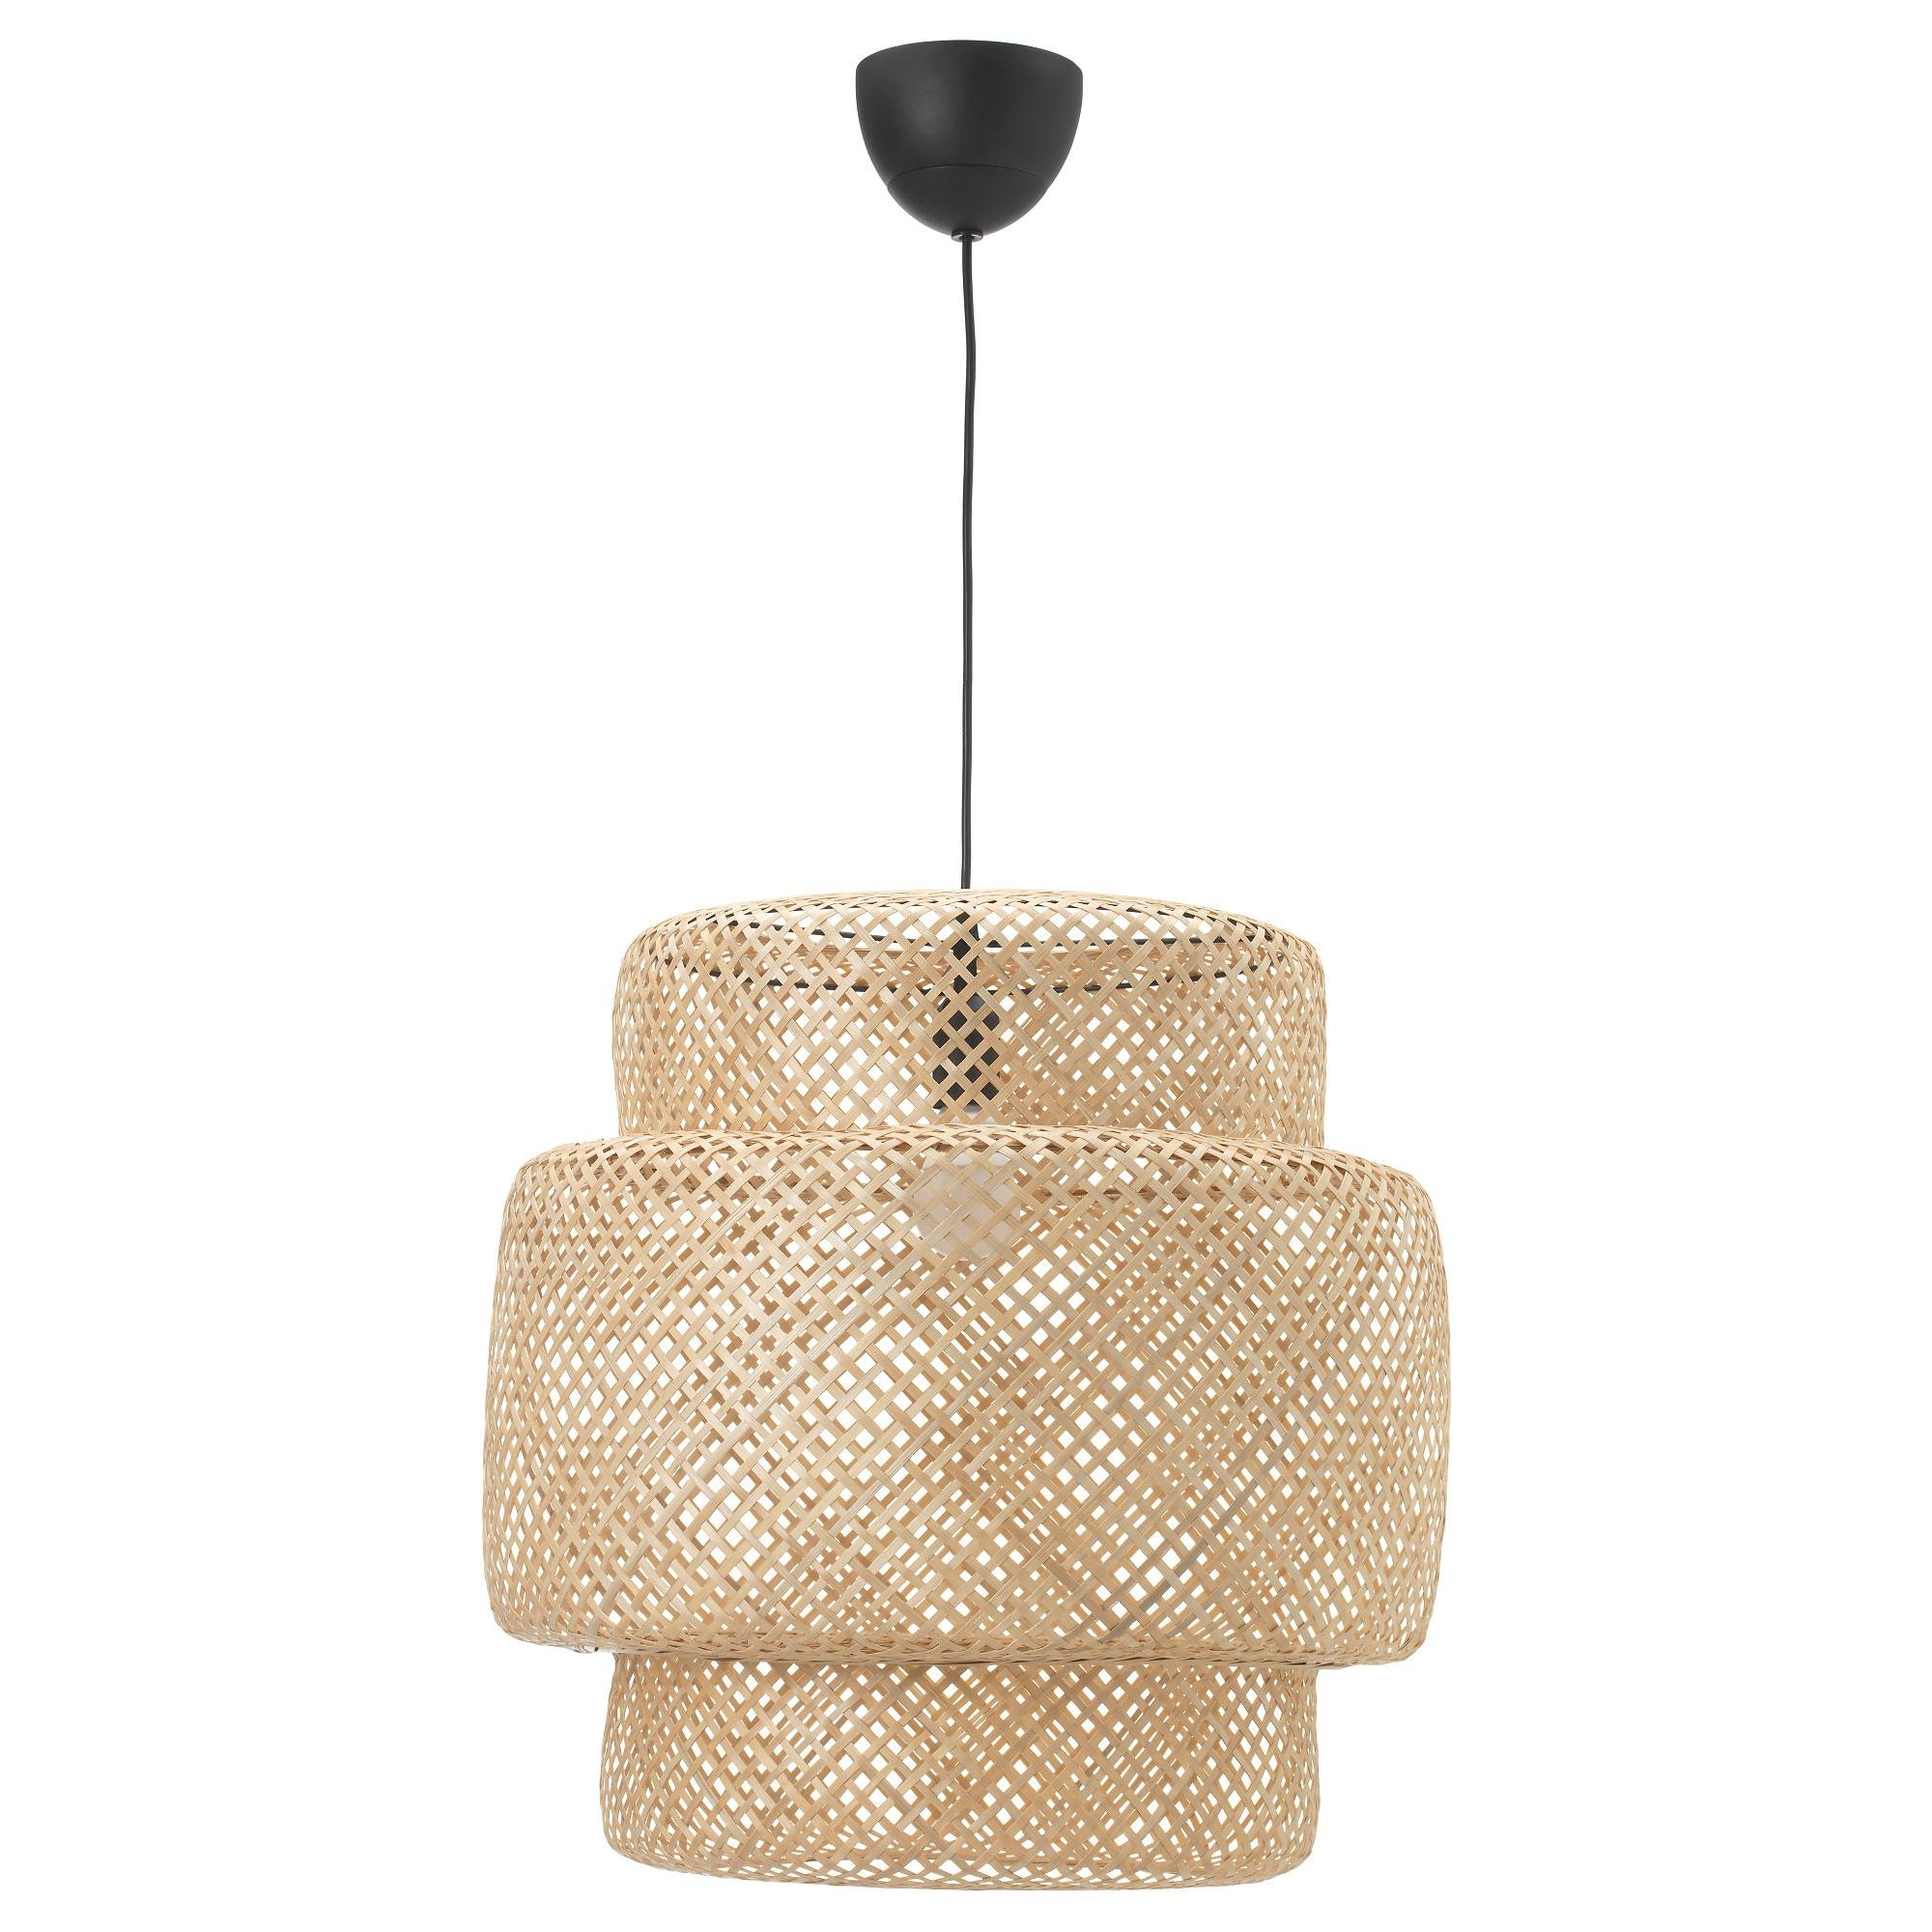 Sinnerlig Pendant Lamp - Bamboo, - - Ikea with regard to Ikea Pendant Lights (Image 14 of 15)